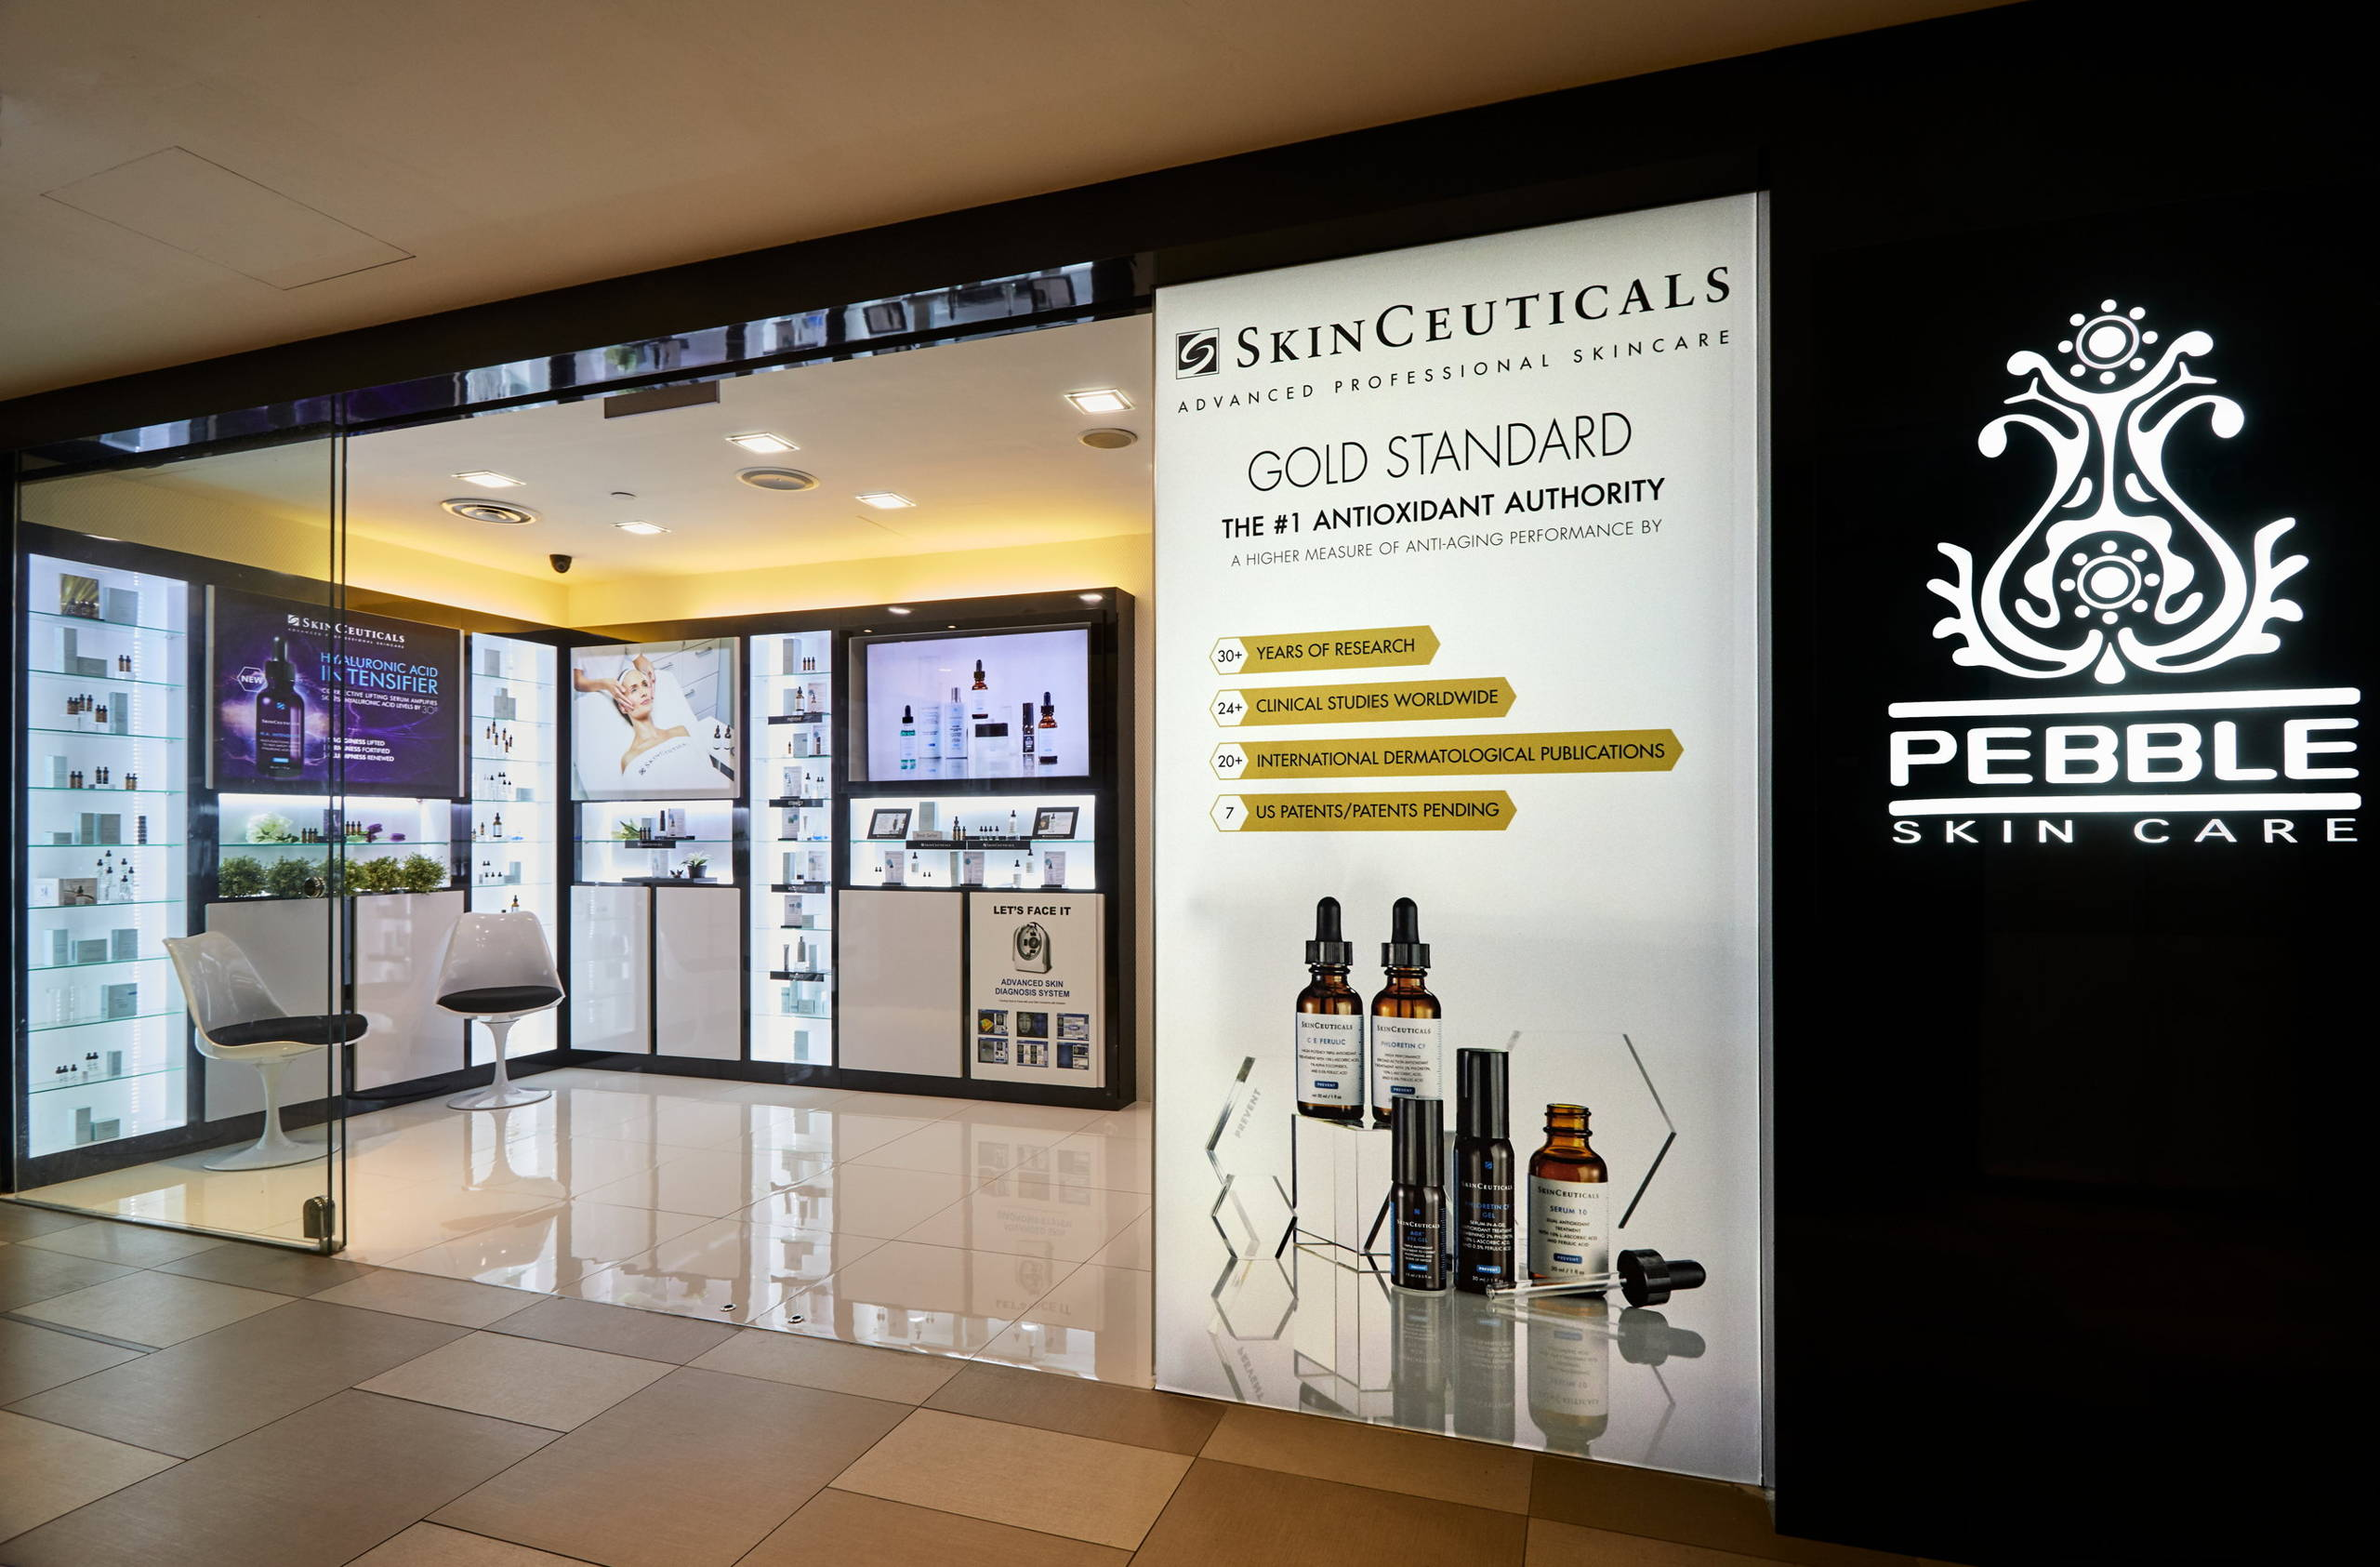 EXCLUSIVELY SKINCEUTICALS AT PEBBLE AESTHETIC